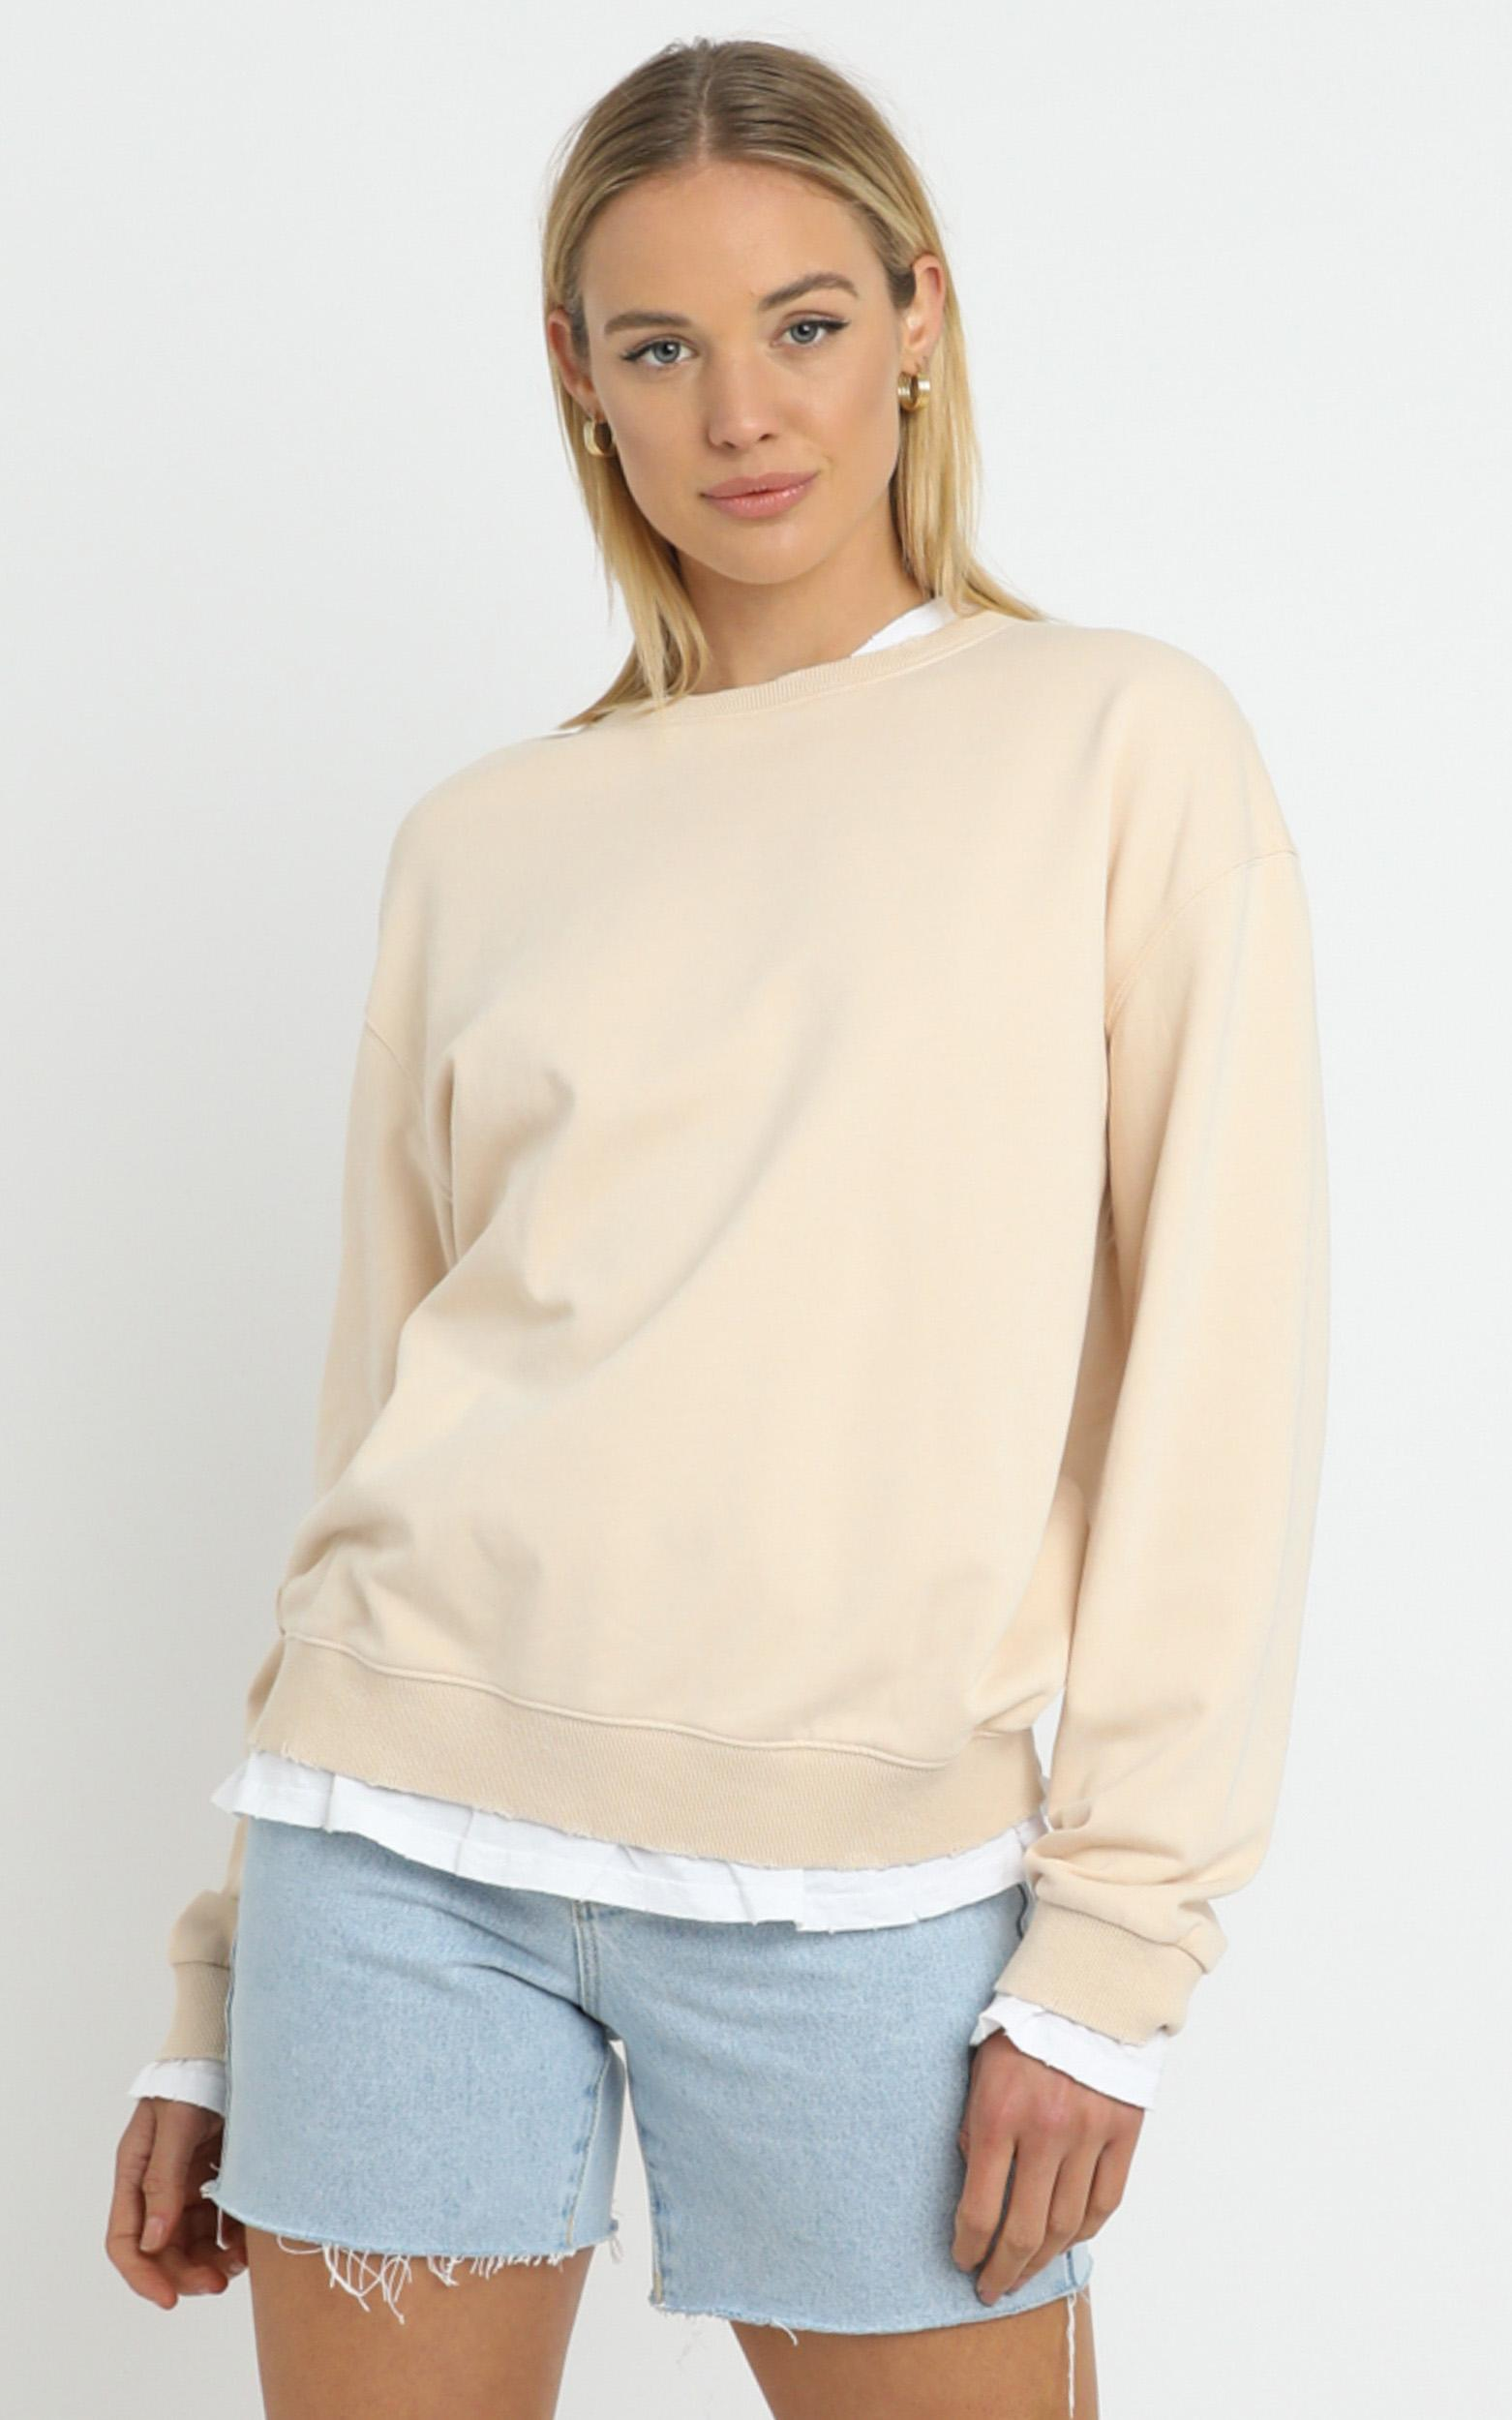 Terry Sweater in Beige - 14 (XL), CRE1, hi-res image number null